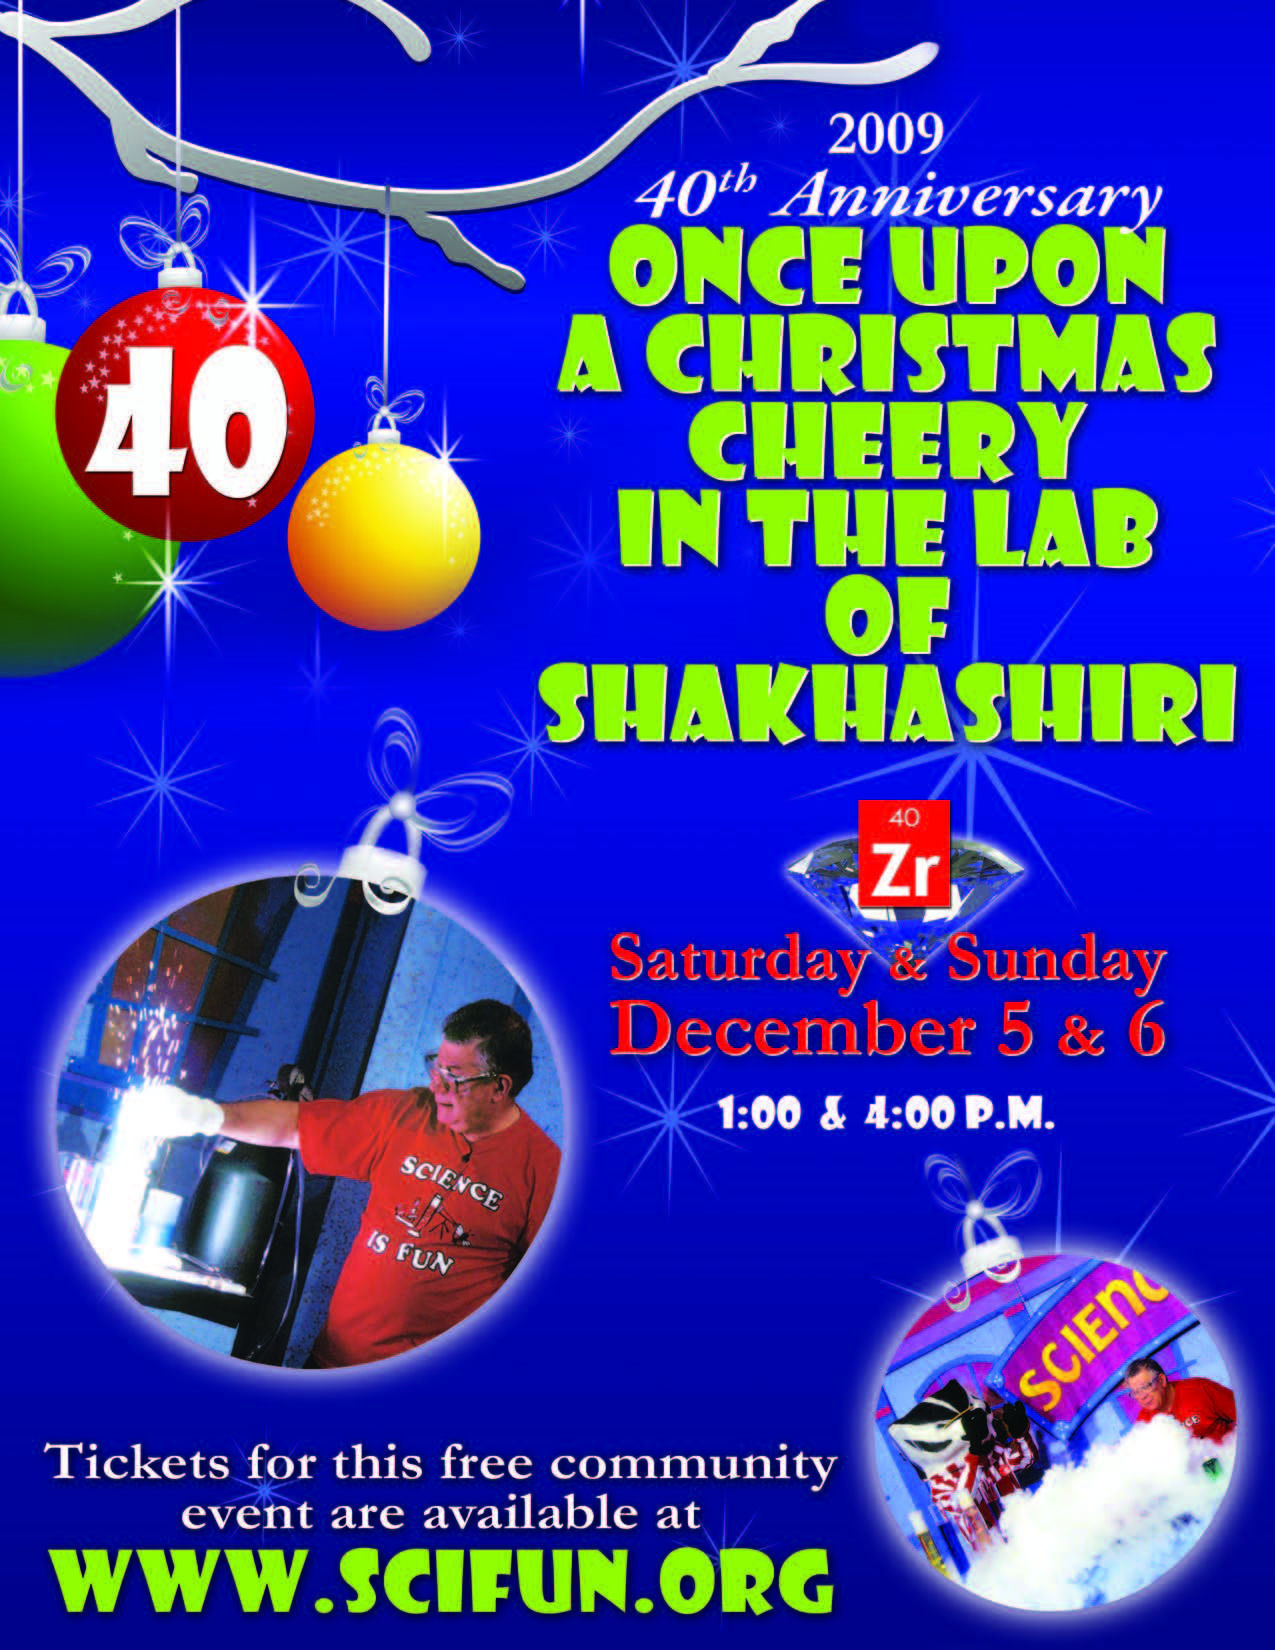 Once Upon A Christmas Cheery In The Lab Of Shakhashiri 2020 The 40th Anniversary of ONCE UPON A CHRISTMAS CHEERY IN THE LAB OF